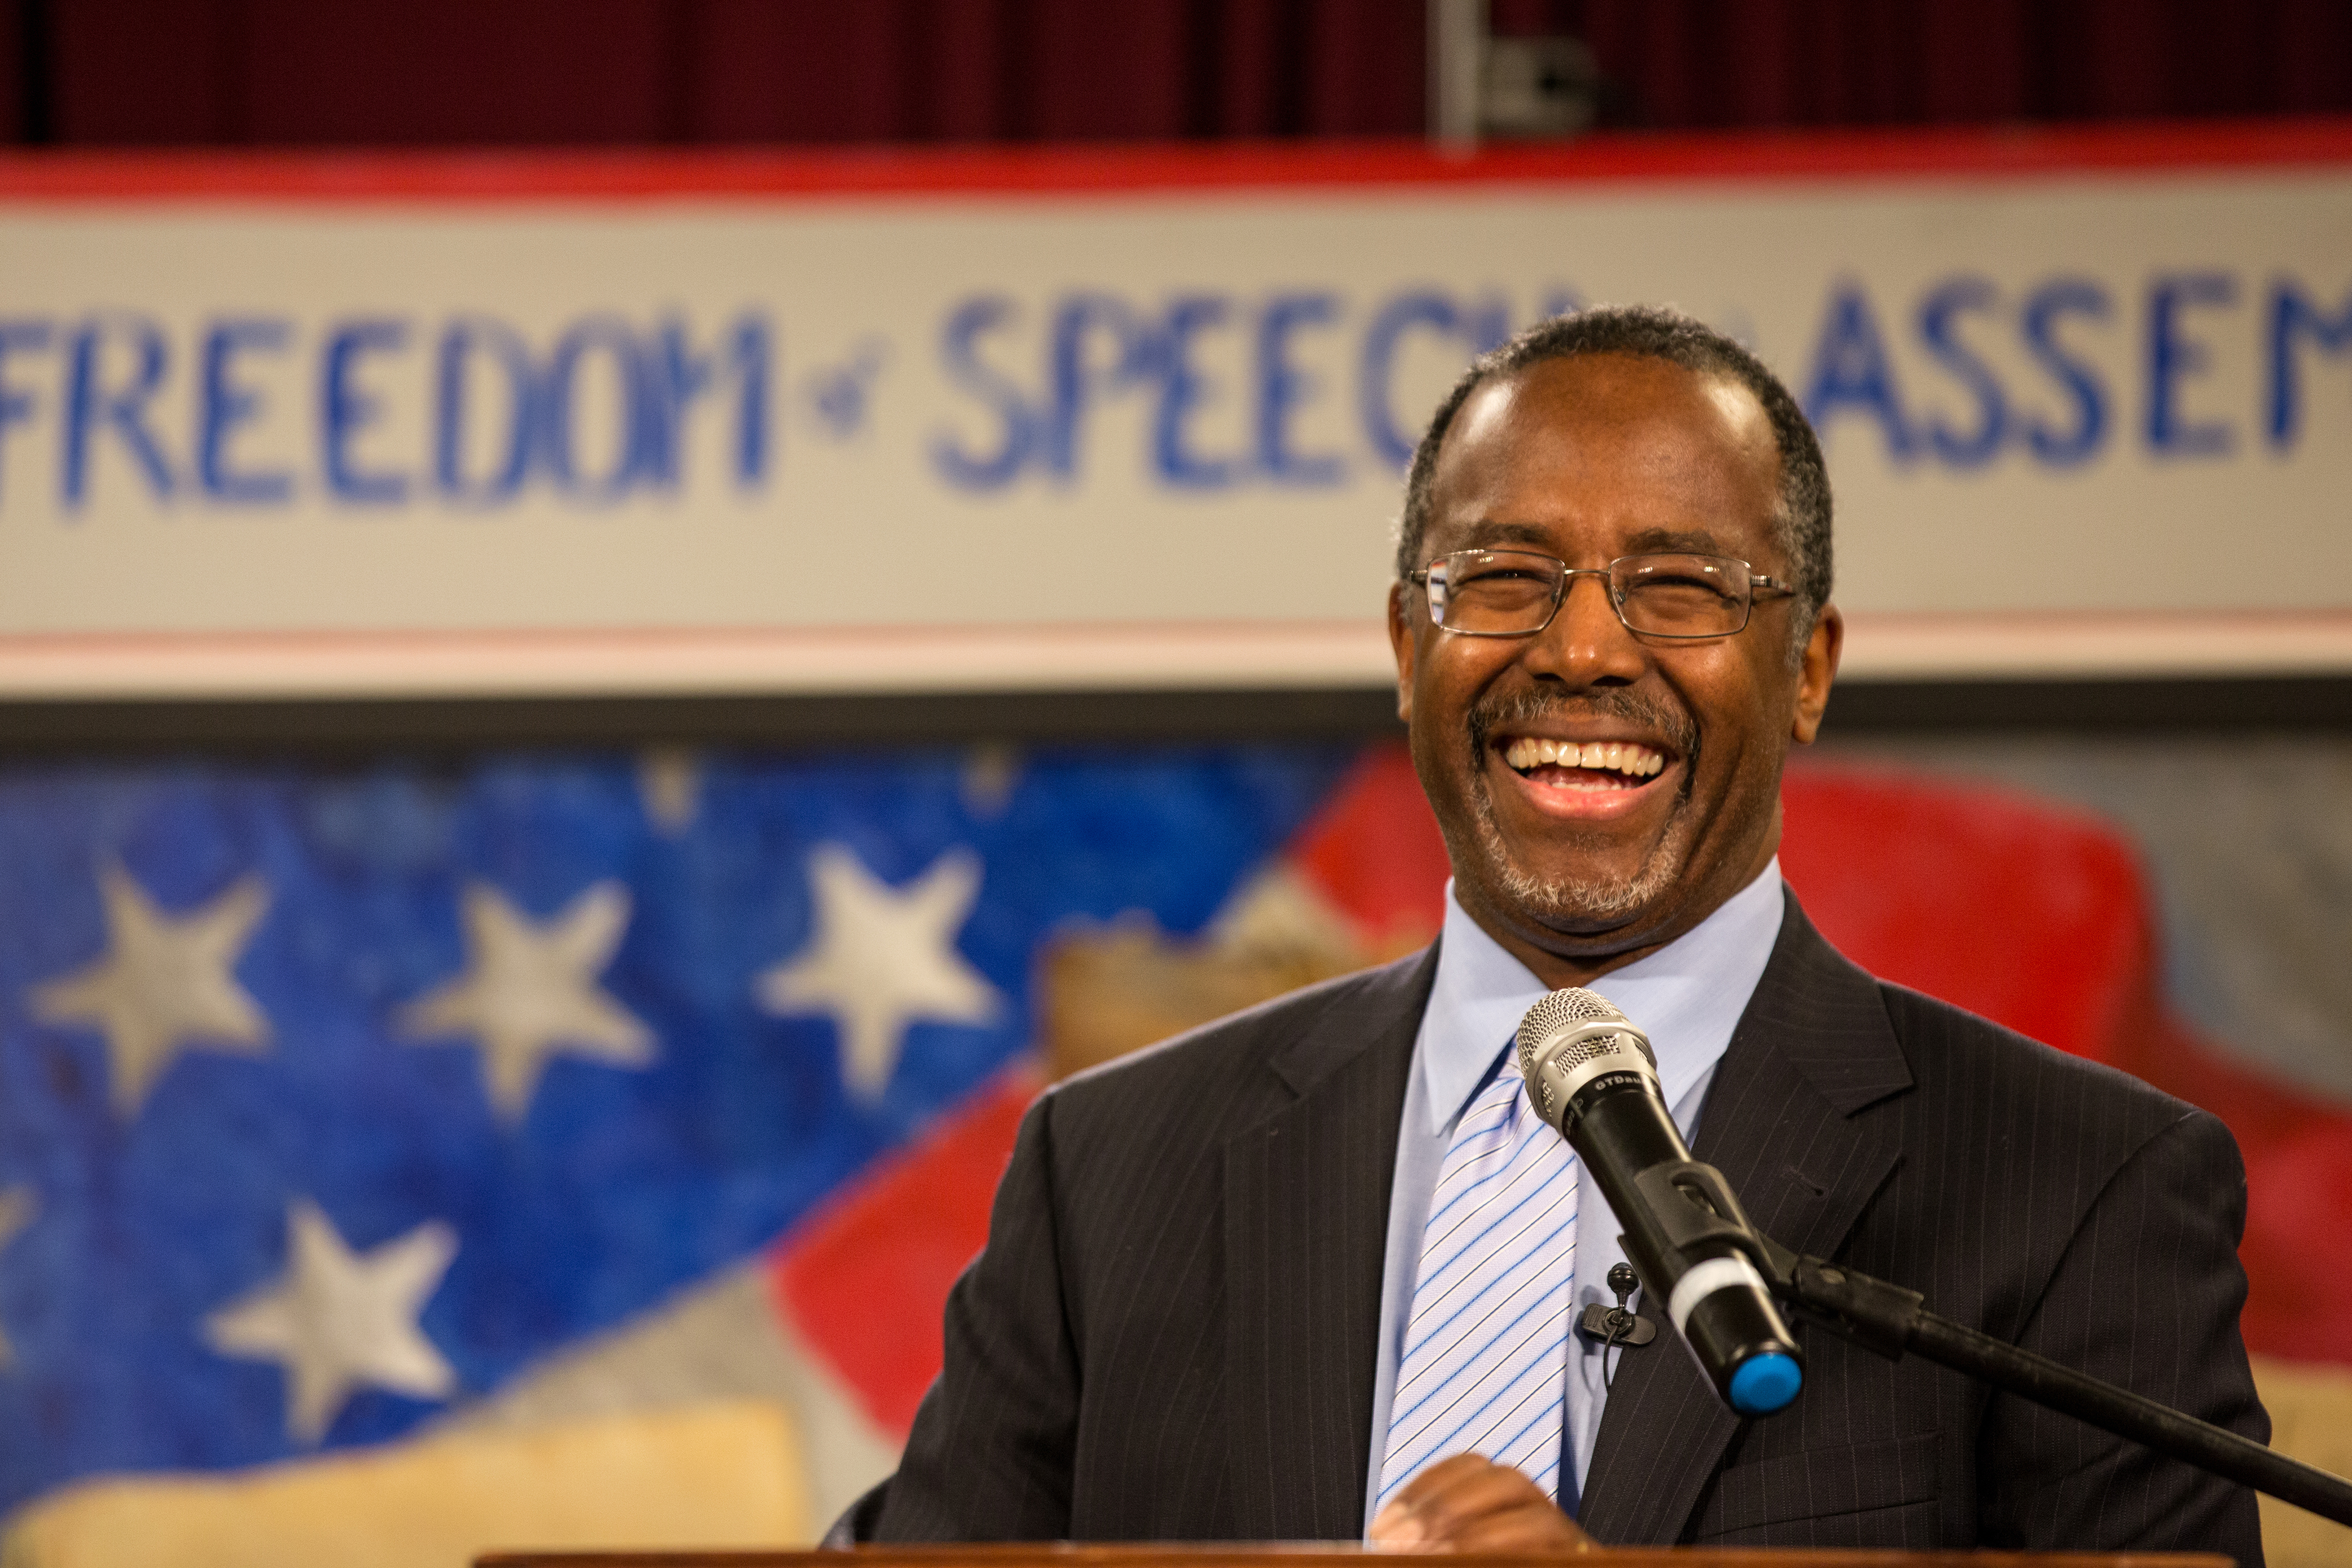 Ben Carson speaks at the South Carolina Tea Party Coalition convention on January 18, 2015 in Myrtle Beach, South Carolina.